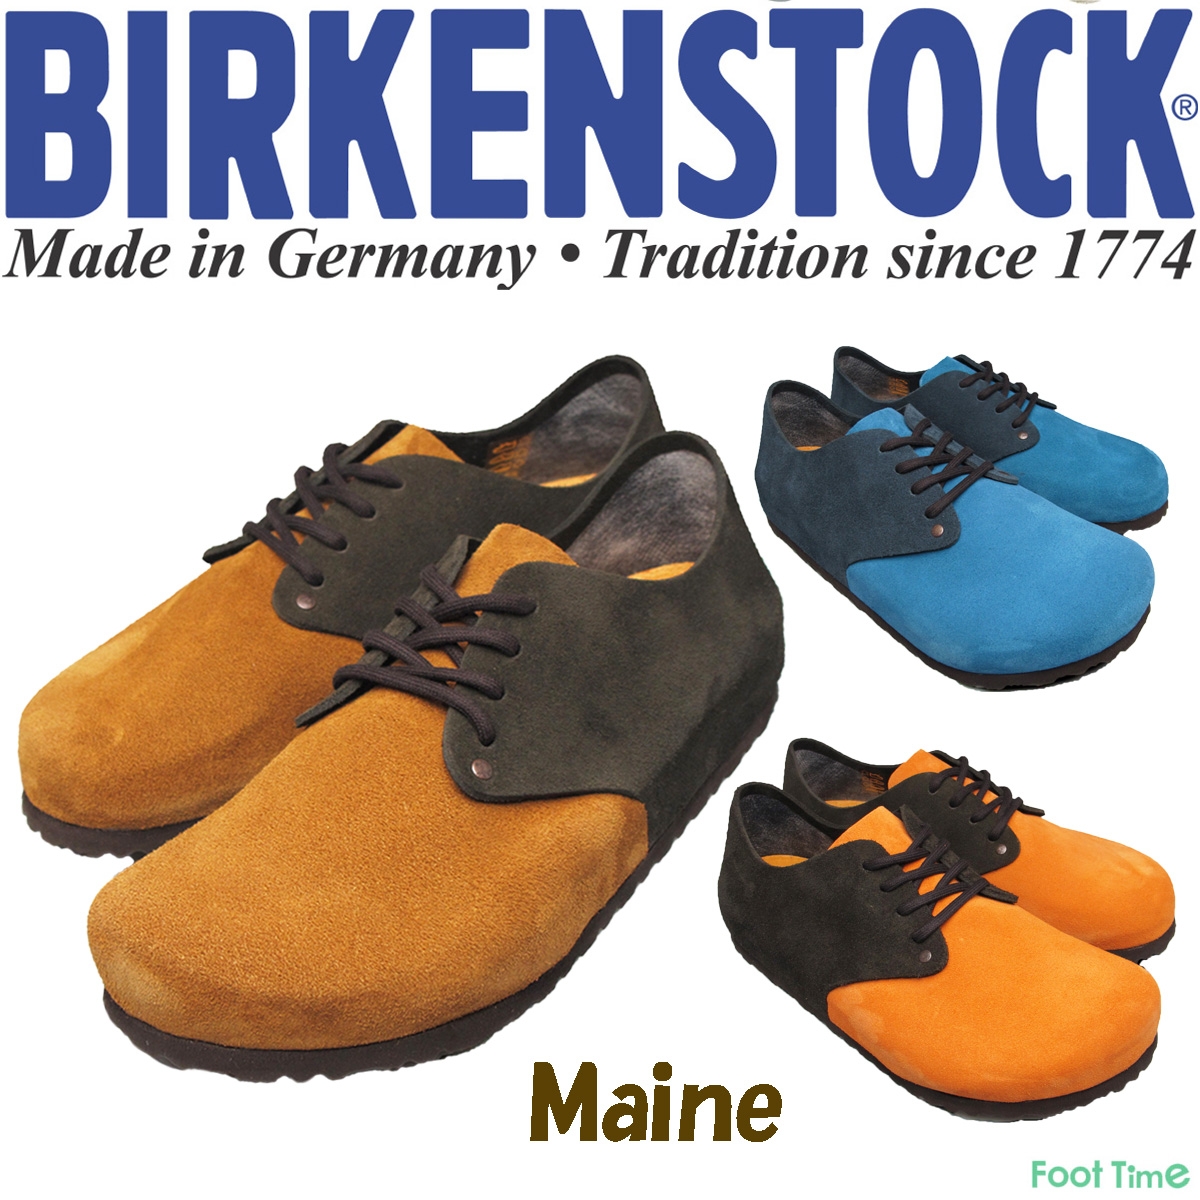 In the promise of Birkenstock main 3 color BIRKENSTOCK MAINE 672171 672181 672191 NAVY